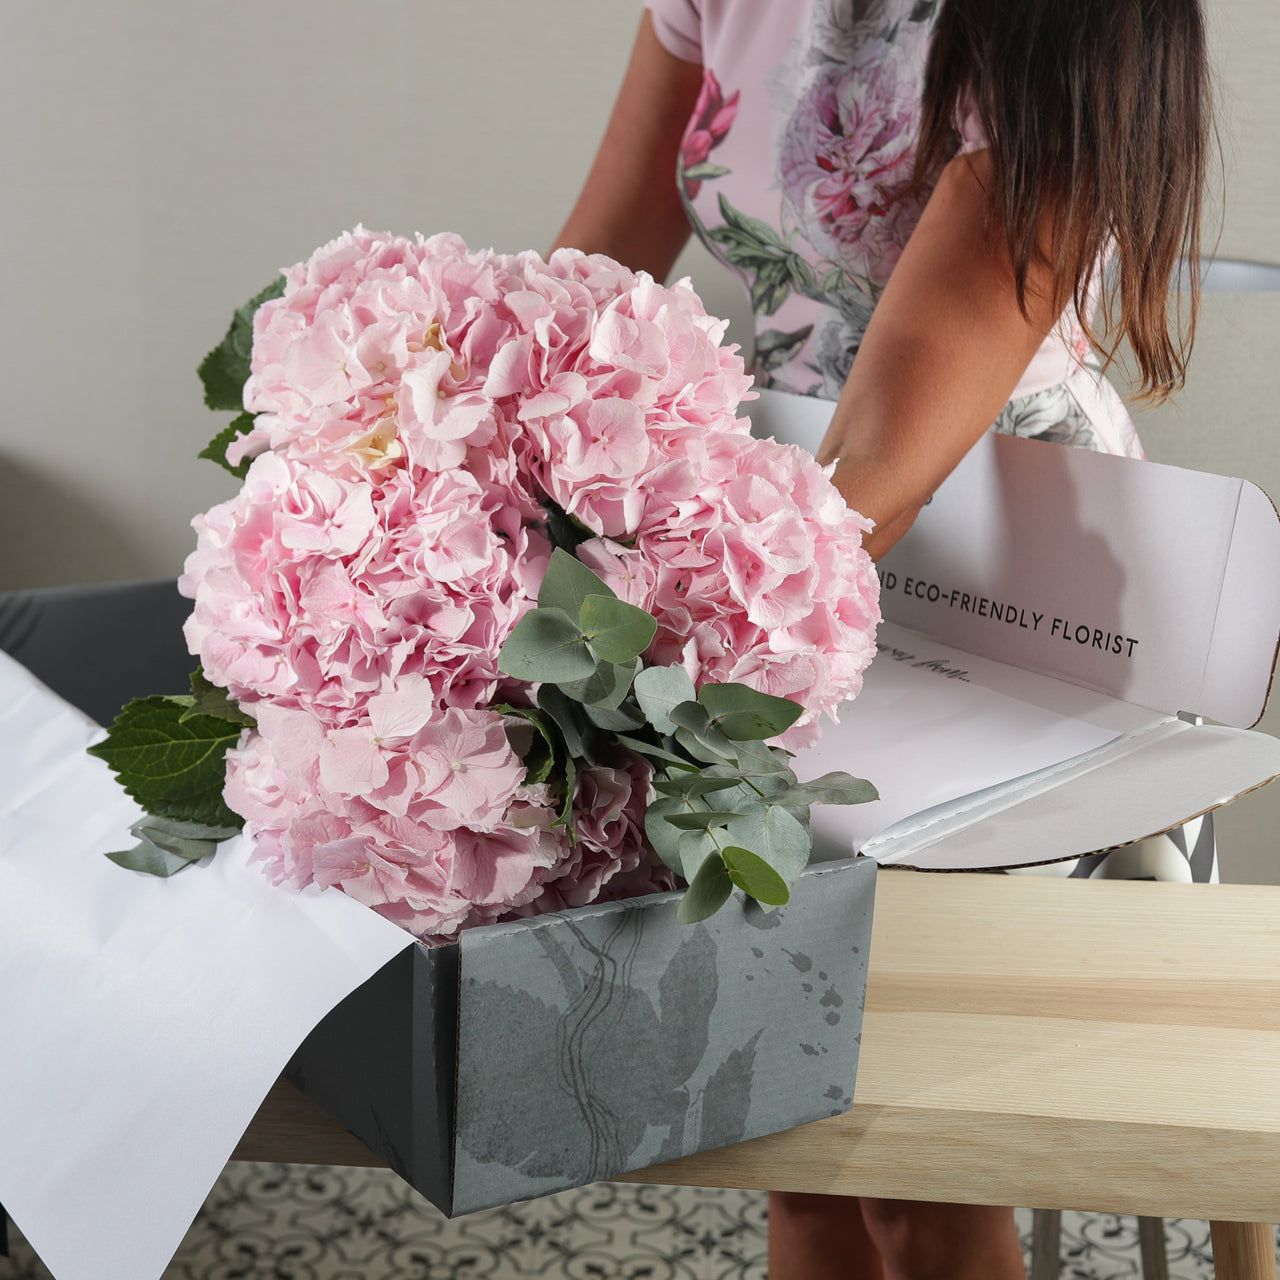 Weekly Flower Subscription